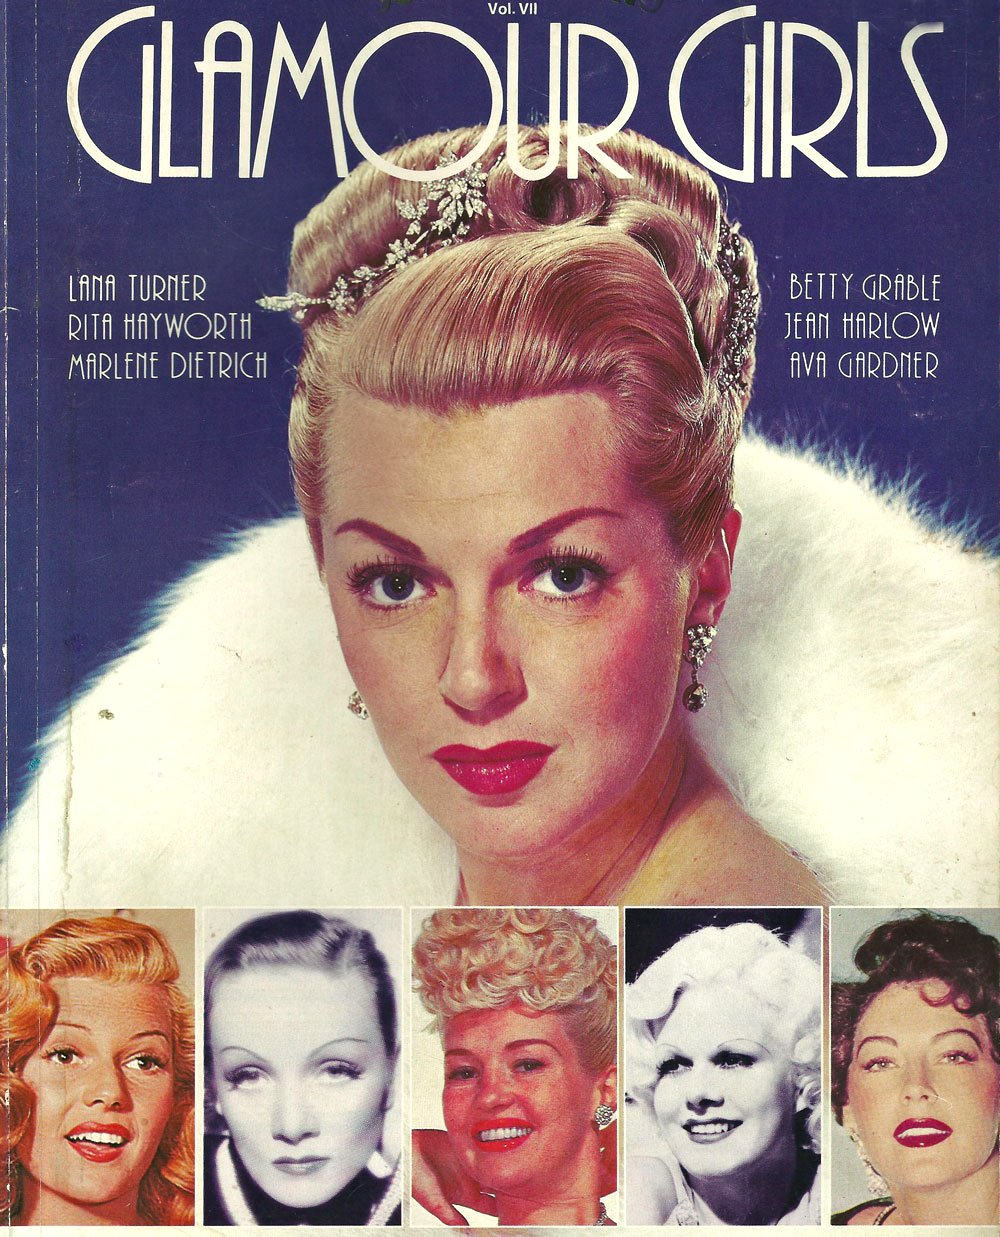 Glamour Girls 1940s Google image from http://hair-and-makeup-artist.com/wordpress/wp-content/uploads/2012/01/Mag-cover-1940s.jpg